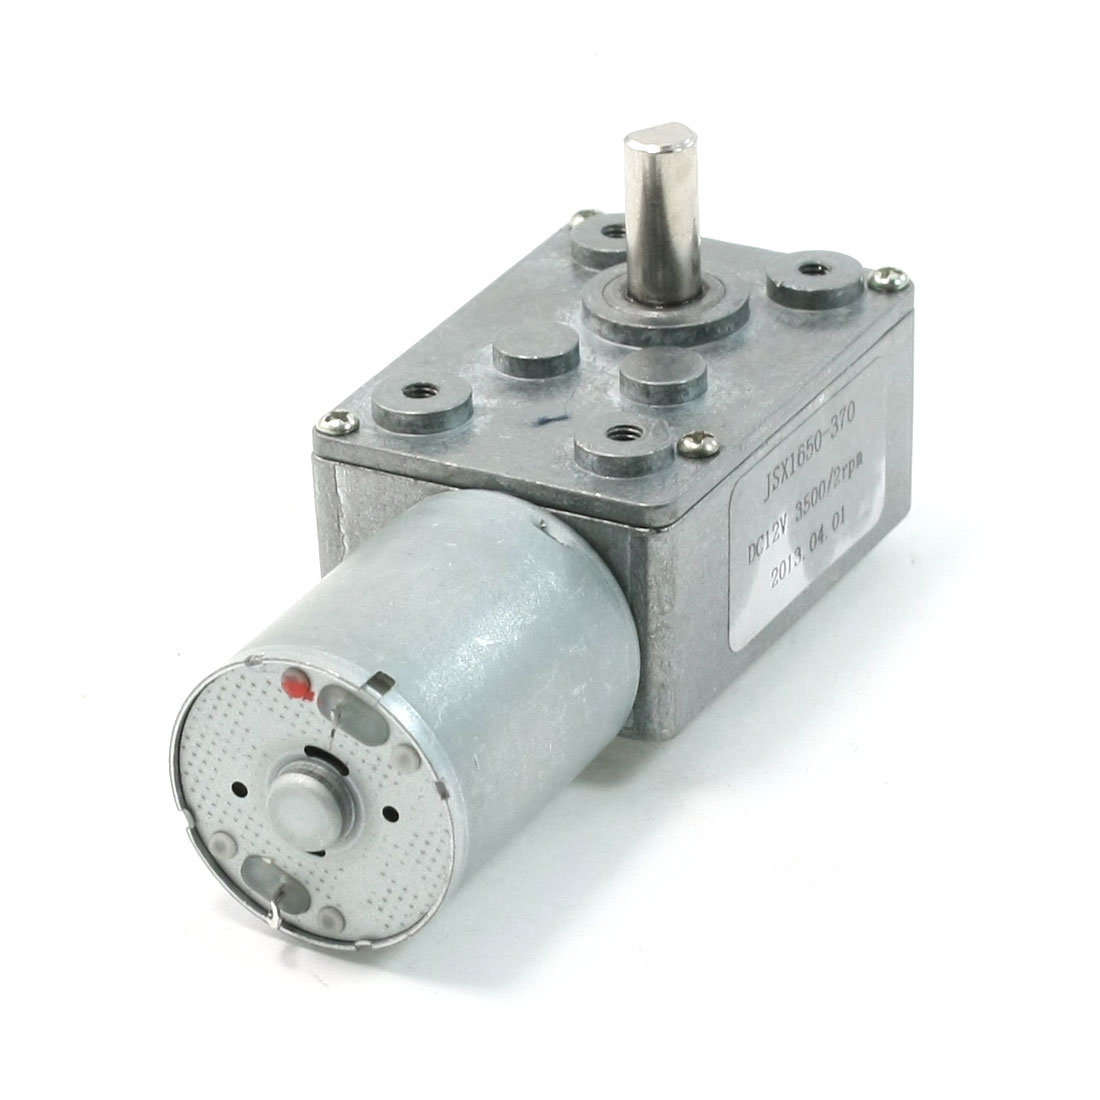 3500-2RPM-Output-Rotating-Speed-2-Pin-6mm-Drive-Shaft-Geared-Motor-DC-12V-Volts